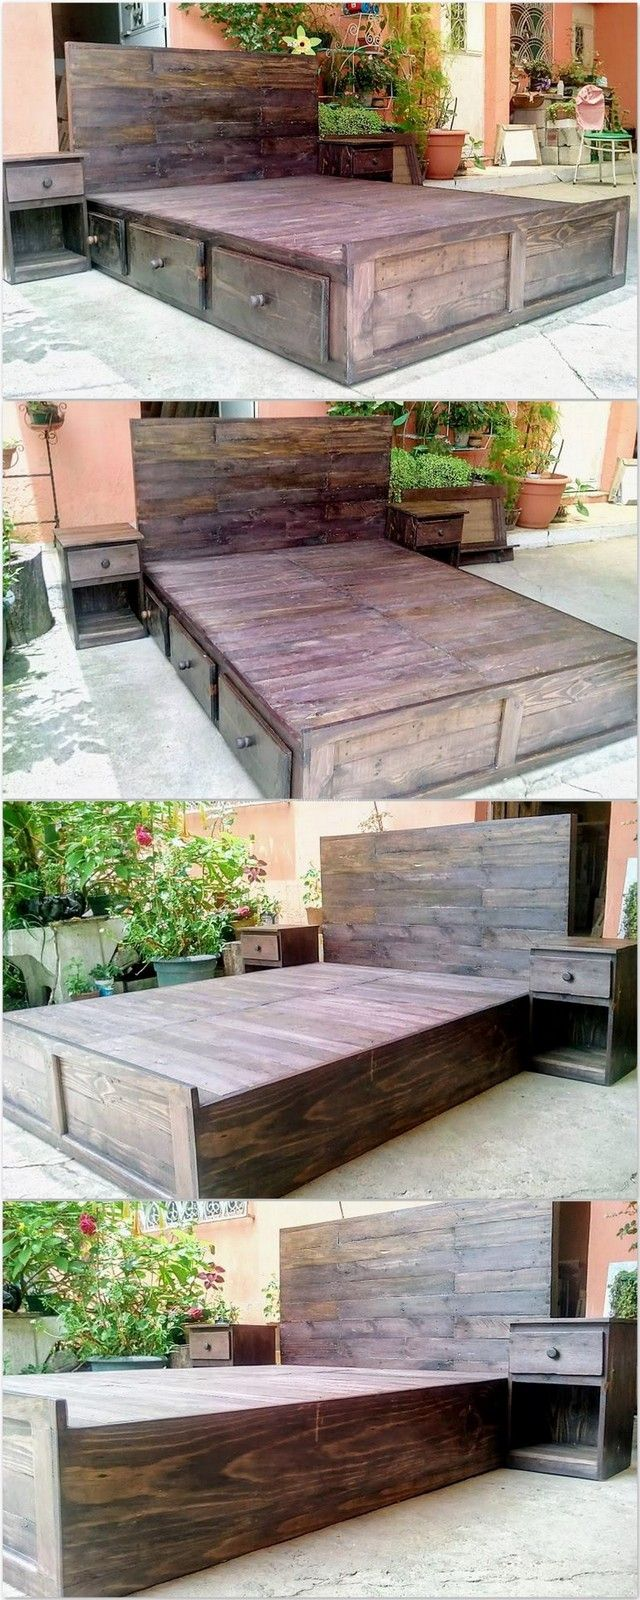 30+Amazing DIY Pallet Wooden Projects | Camas de plataforma, Palets ...